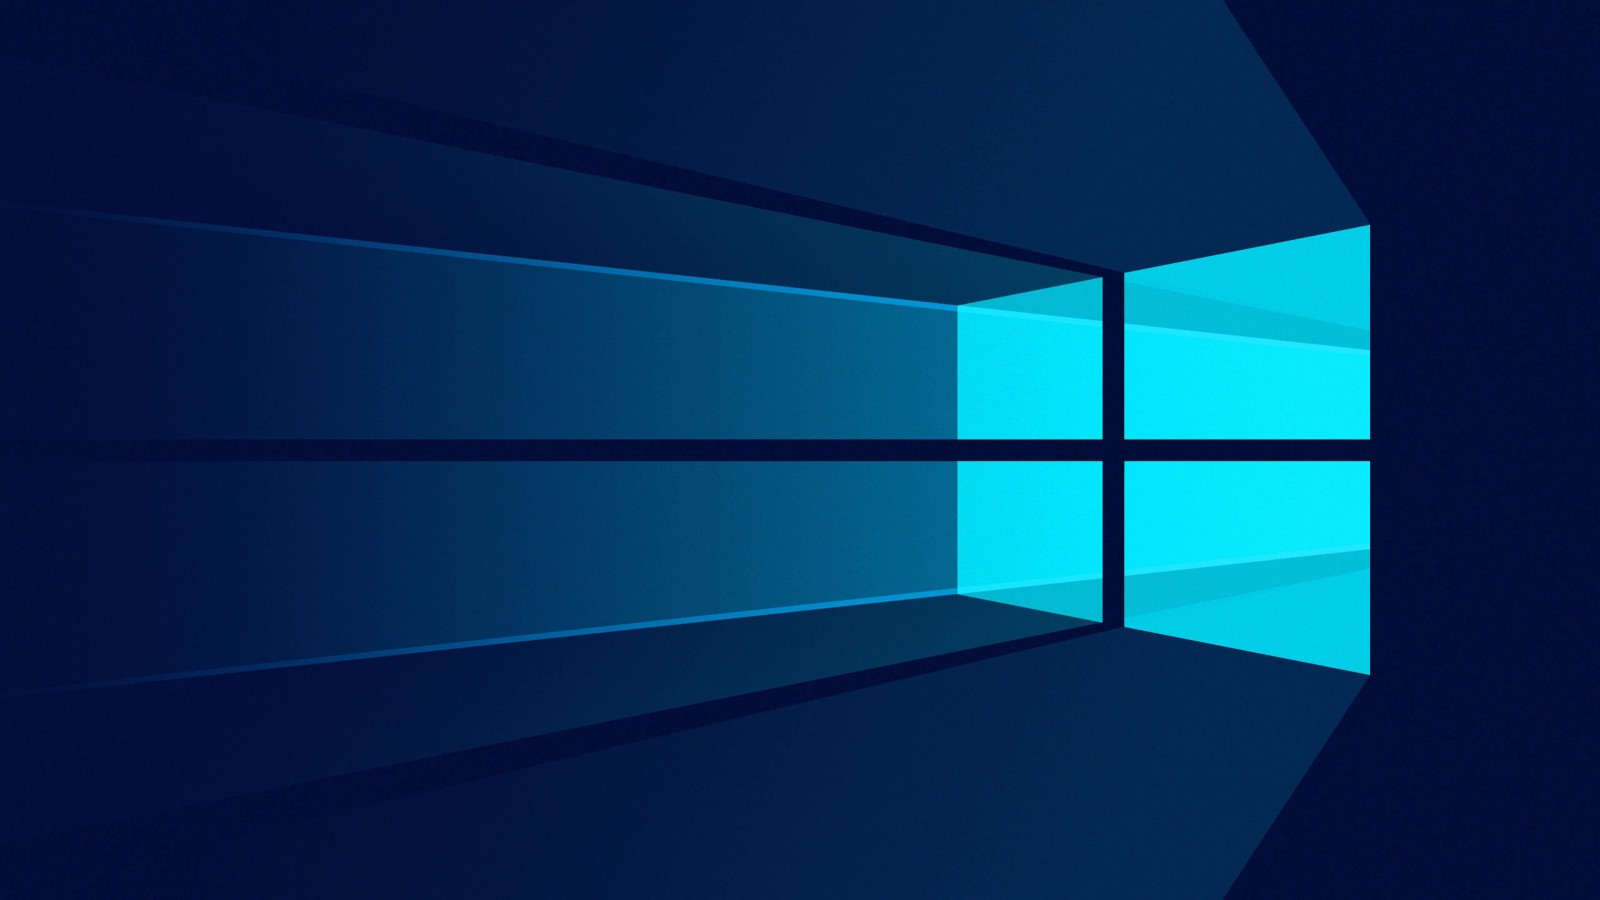 Download Windows 10 Flat HD wallpaper for 1600 x 900 - HDwallpapers ...: https://www.hdwallpapers.net/preview/windows-10-flat-wallpaper-for...